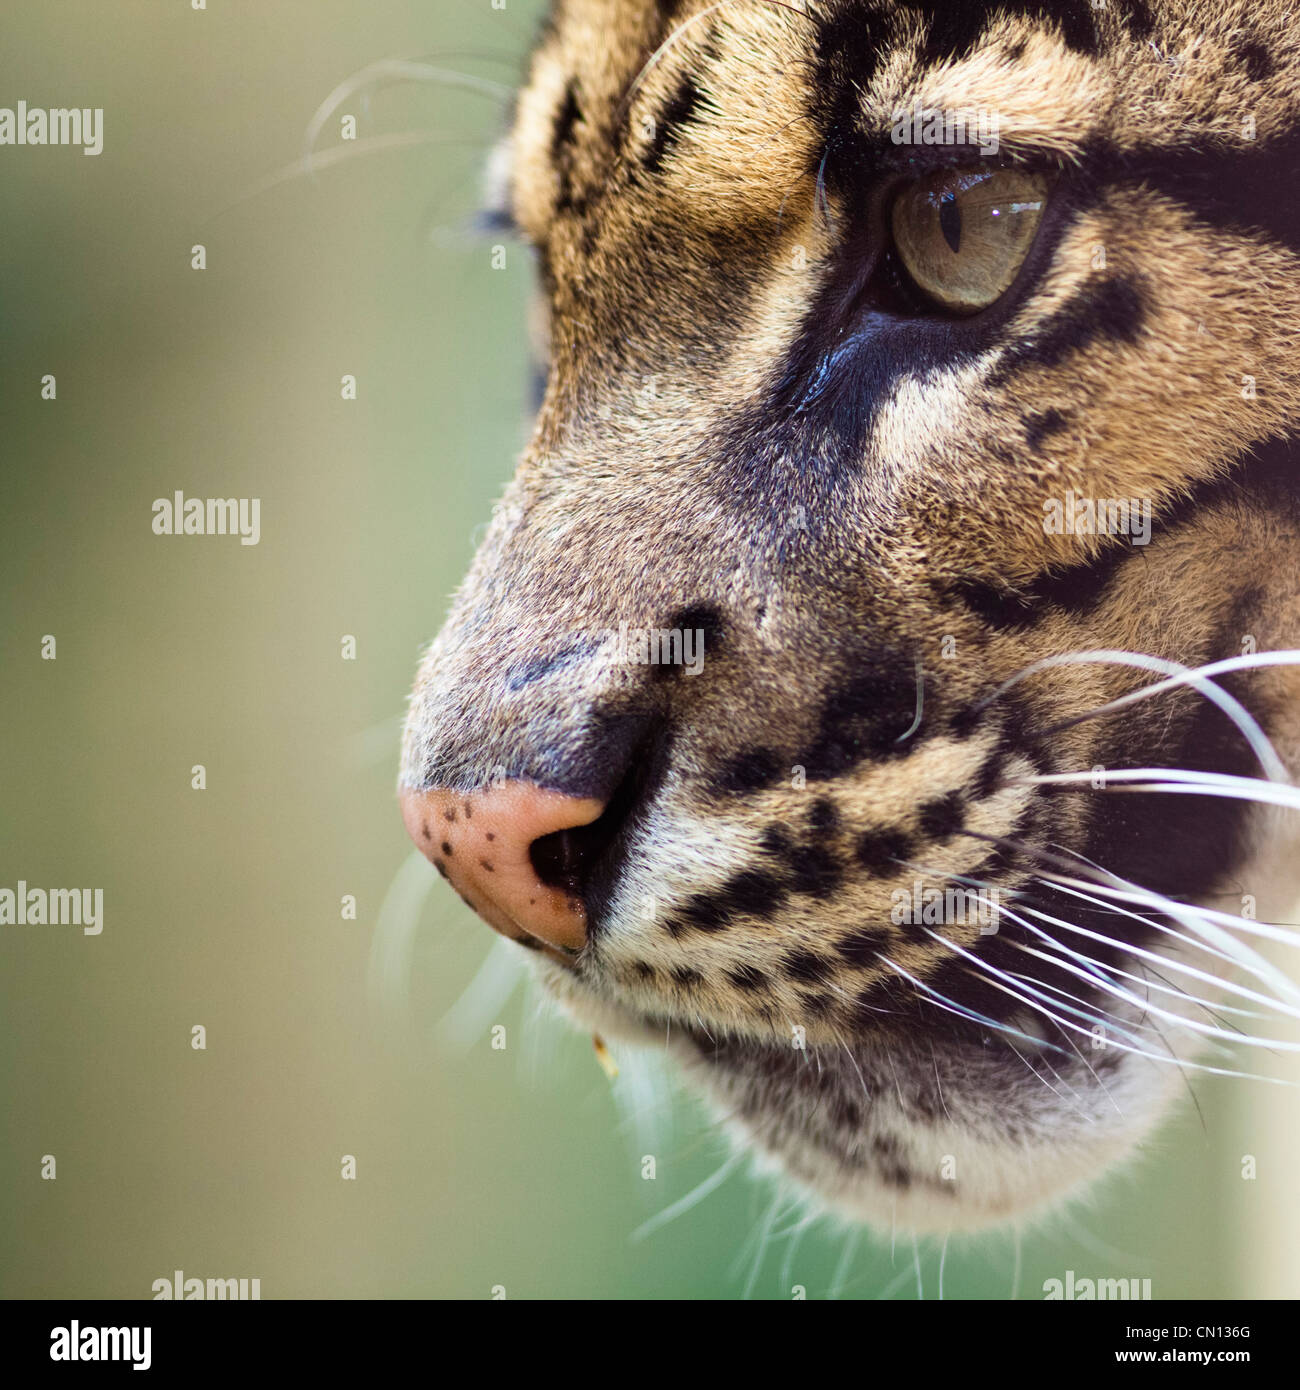 Clouded leopard - Neofelis nebulosa - portrait with eye close up - Stock Image